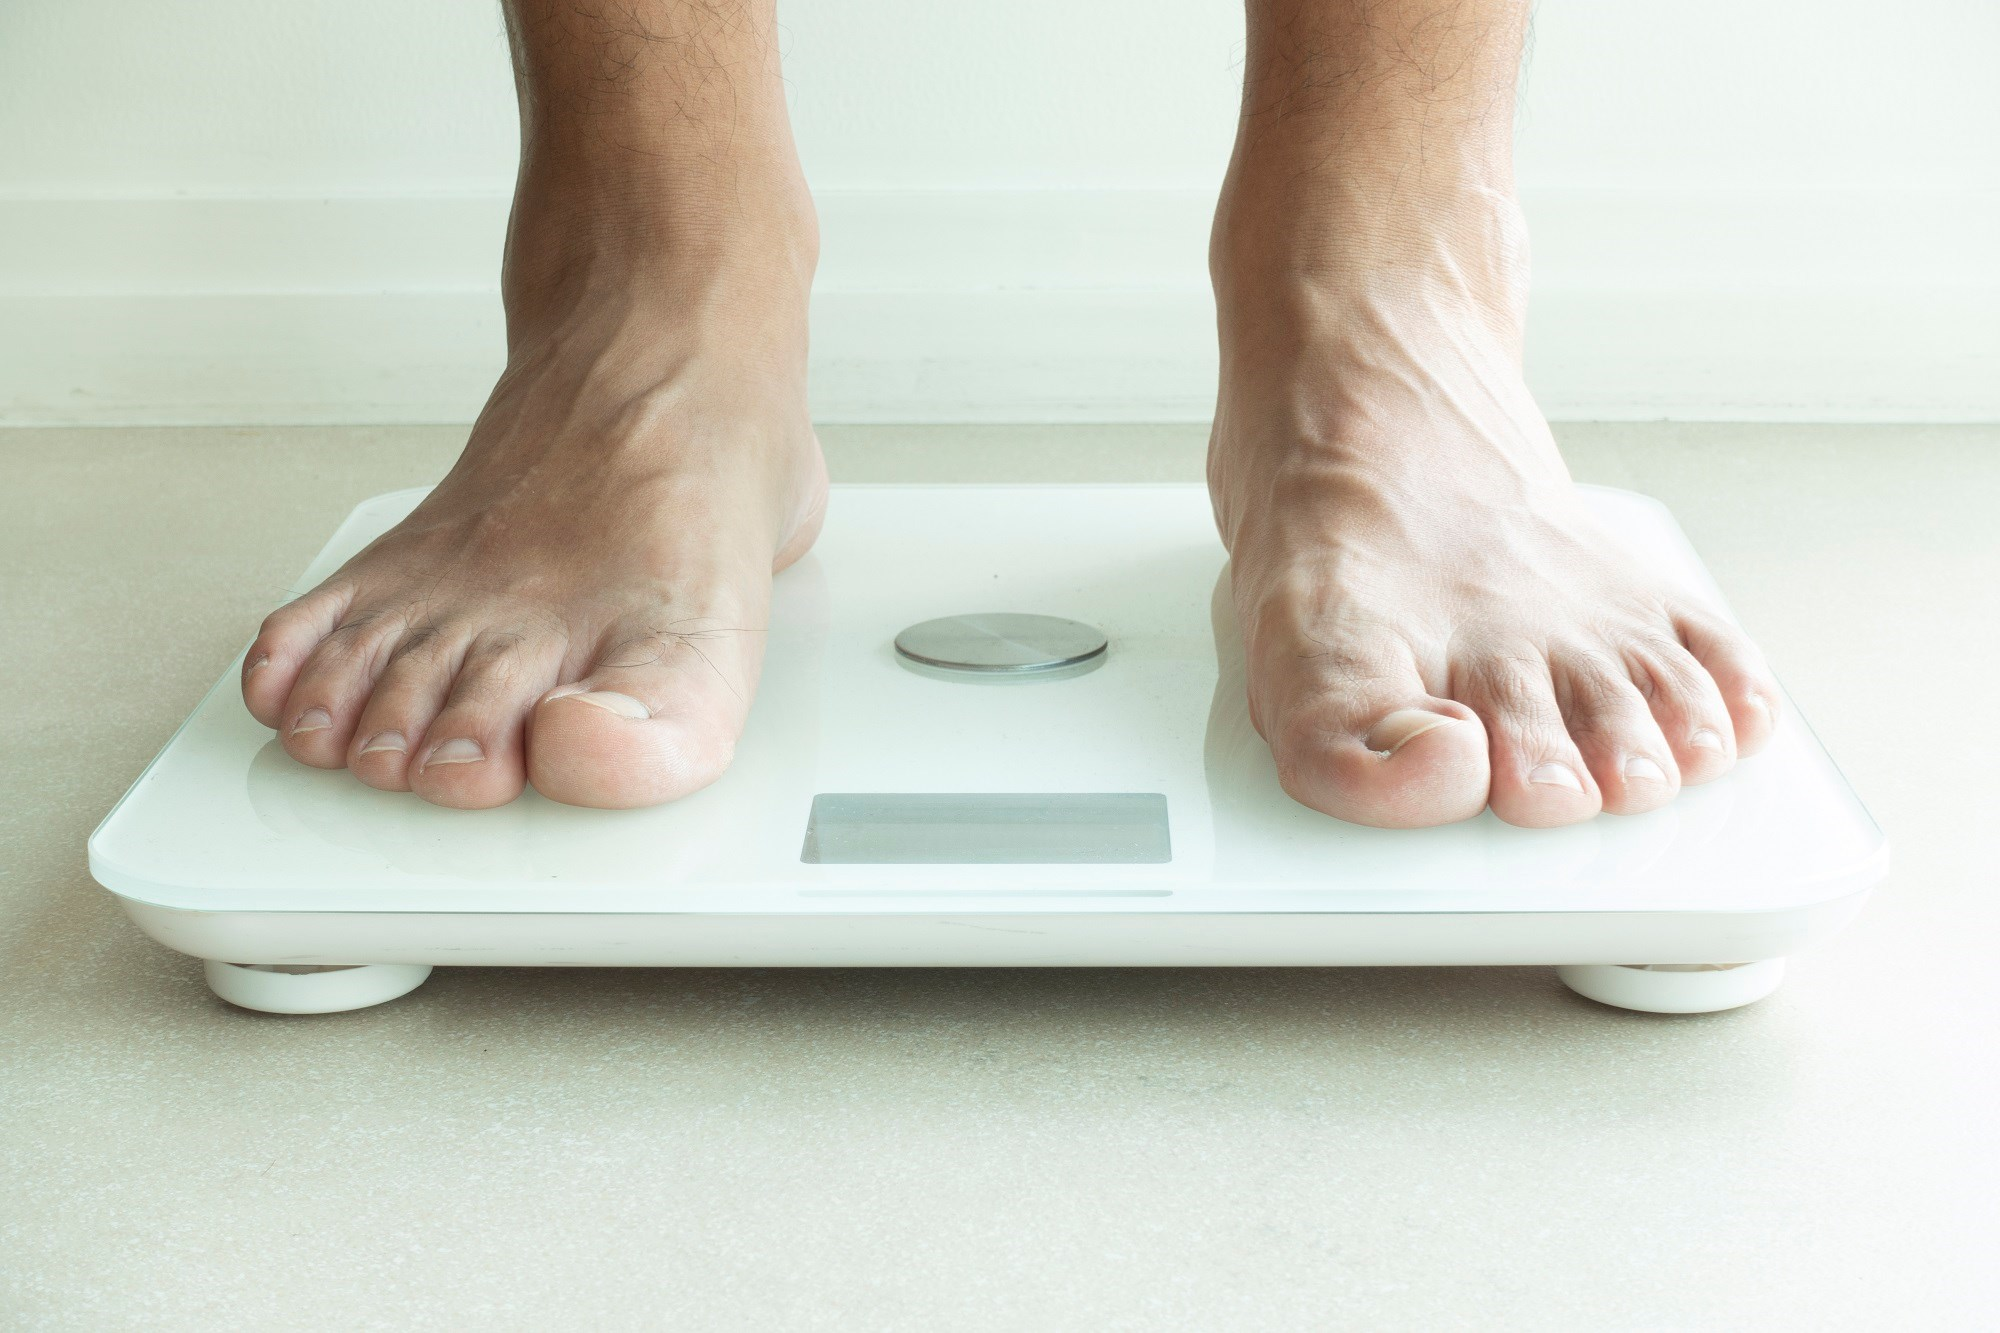 Efficacy of Tocilizumab in RA Not Affected by Obesity, Comorbidity Burden